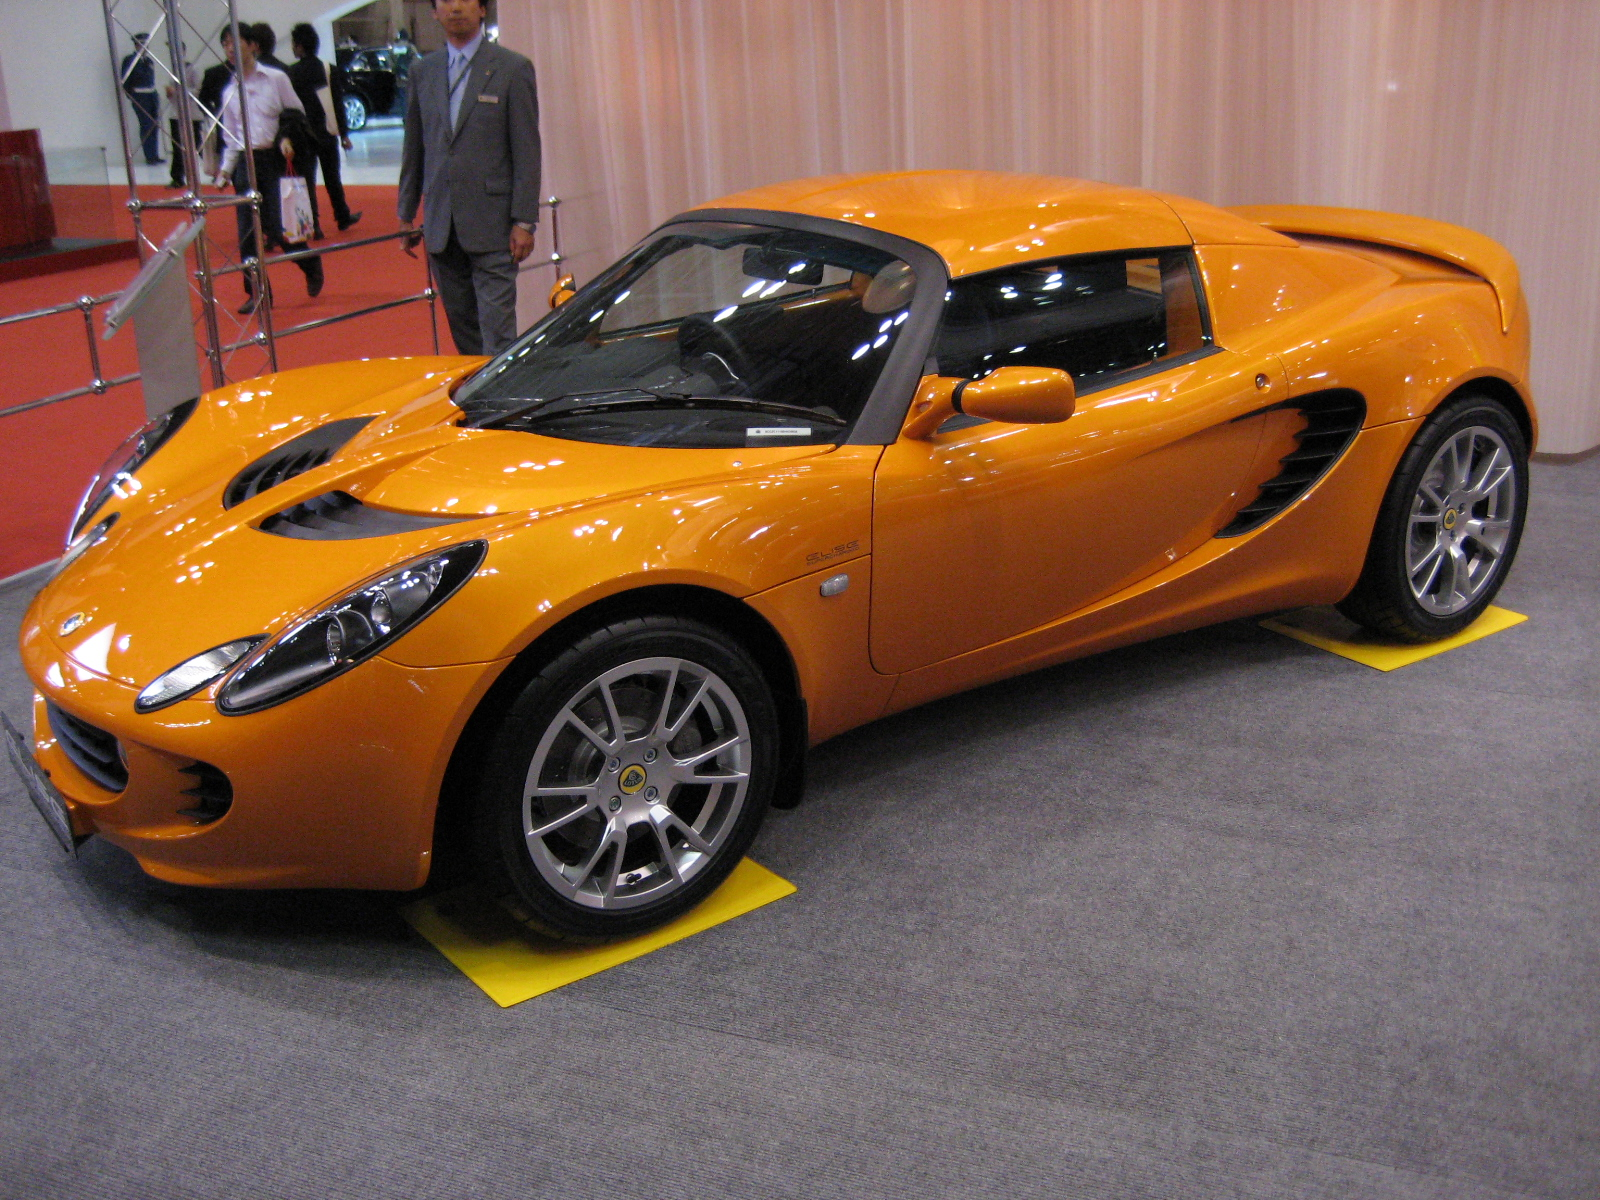 file 2007 lotus elise sc jpg wikimedia commons. Black Bedroom Furniture Sets. Home Design Ideas